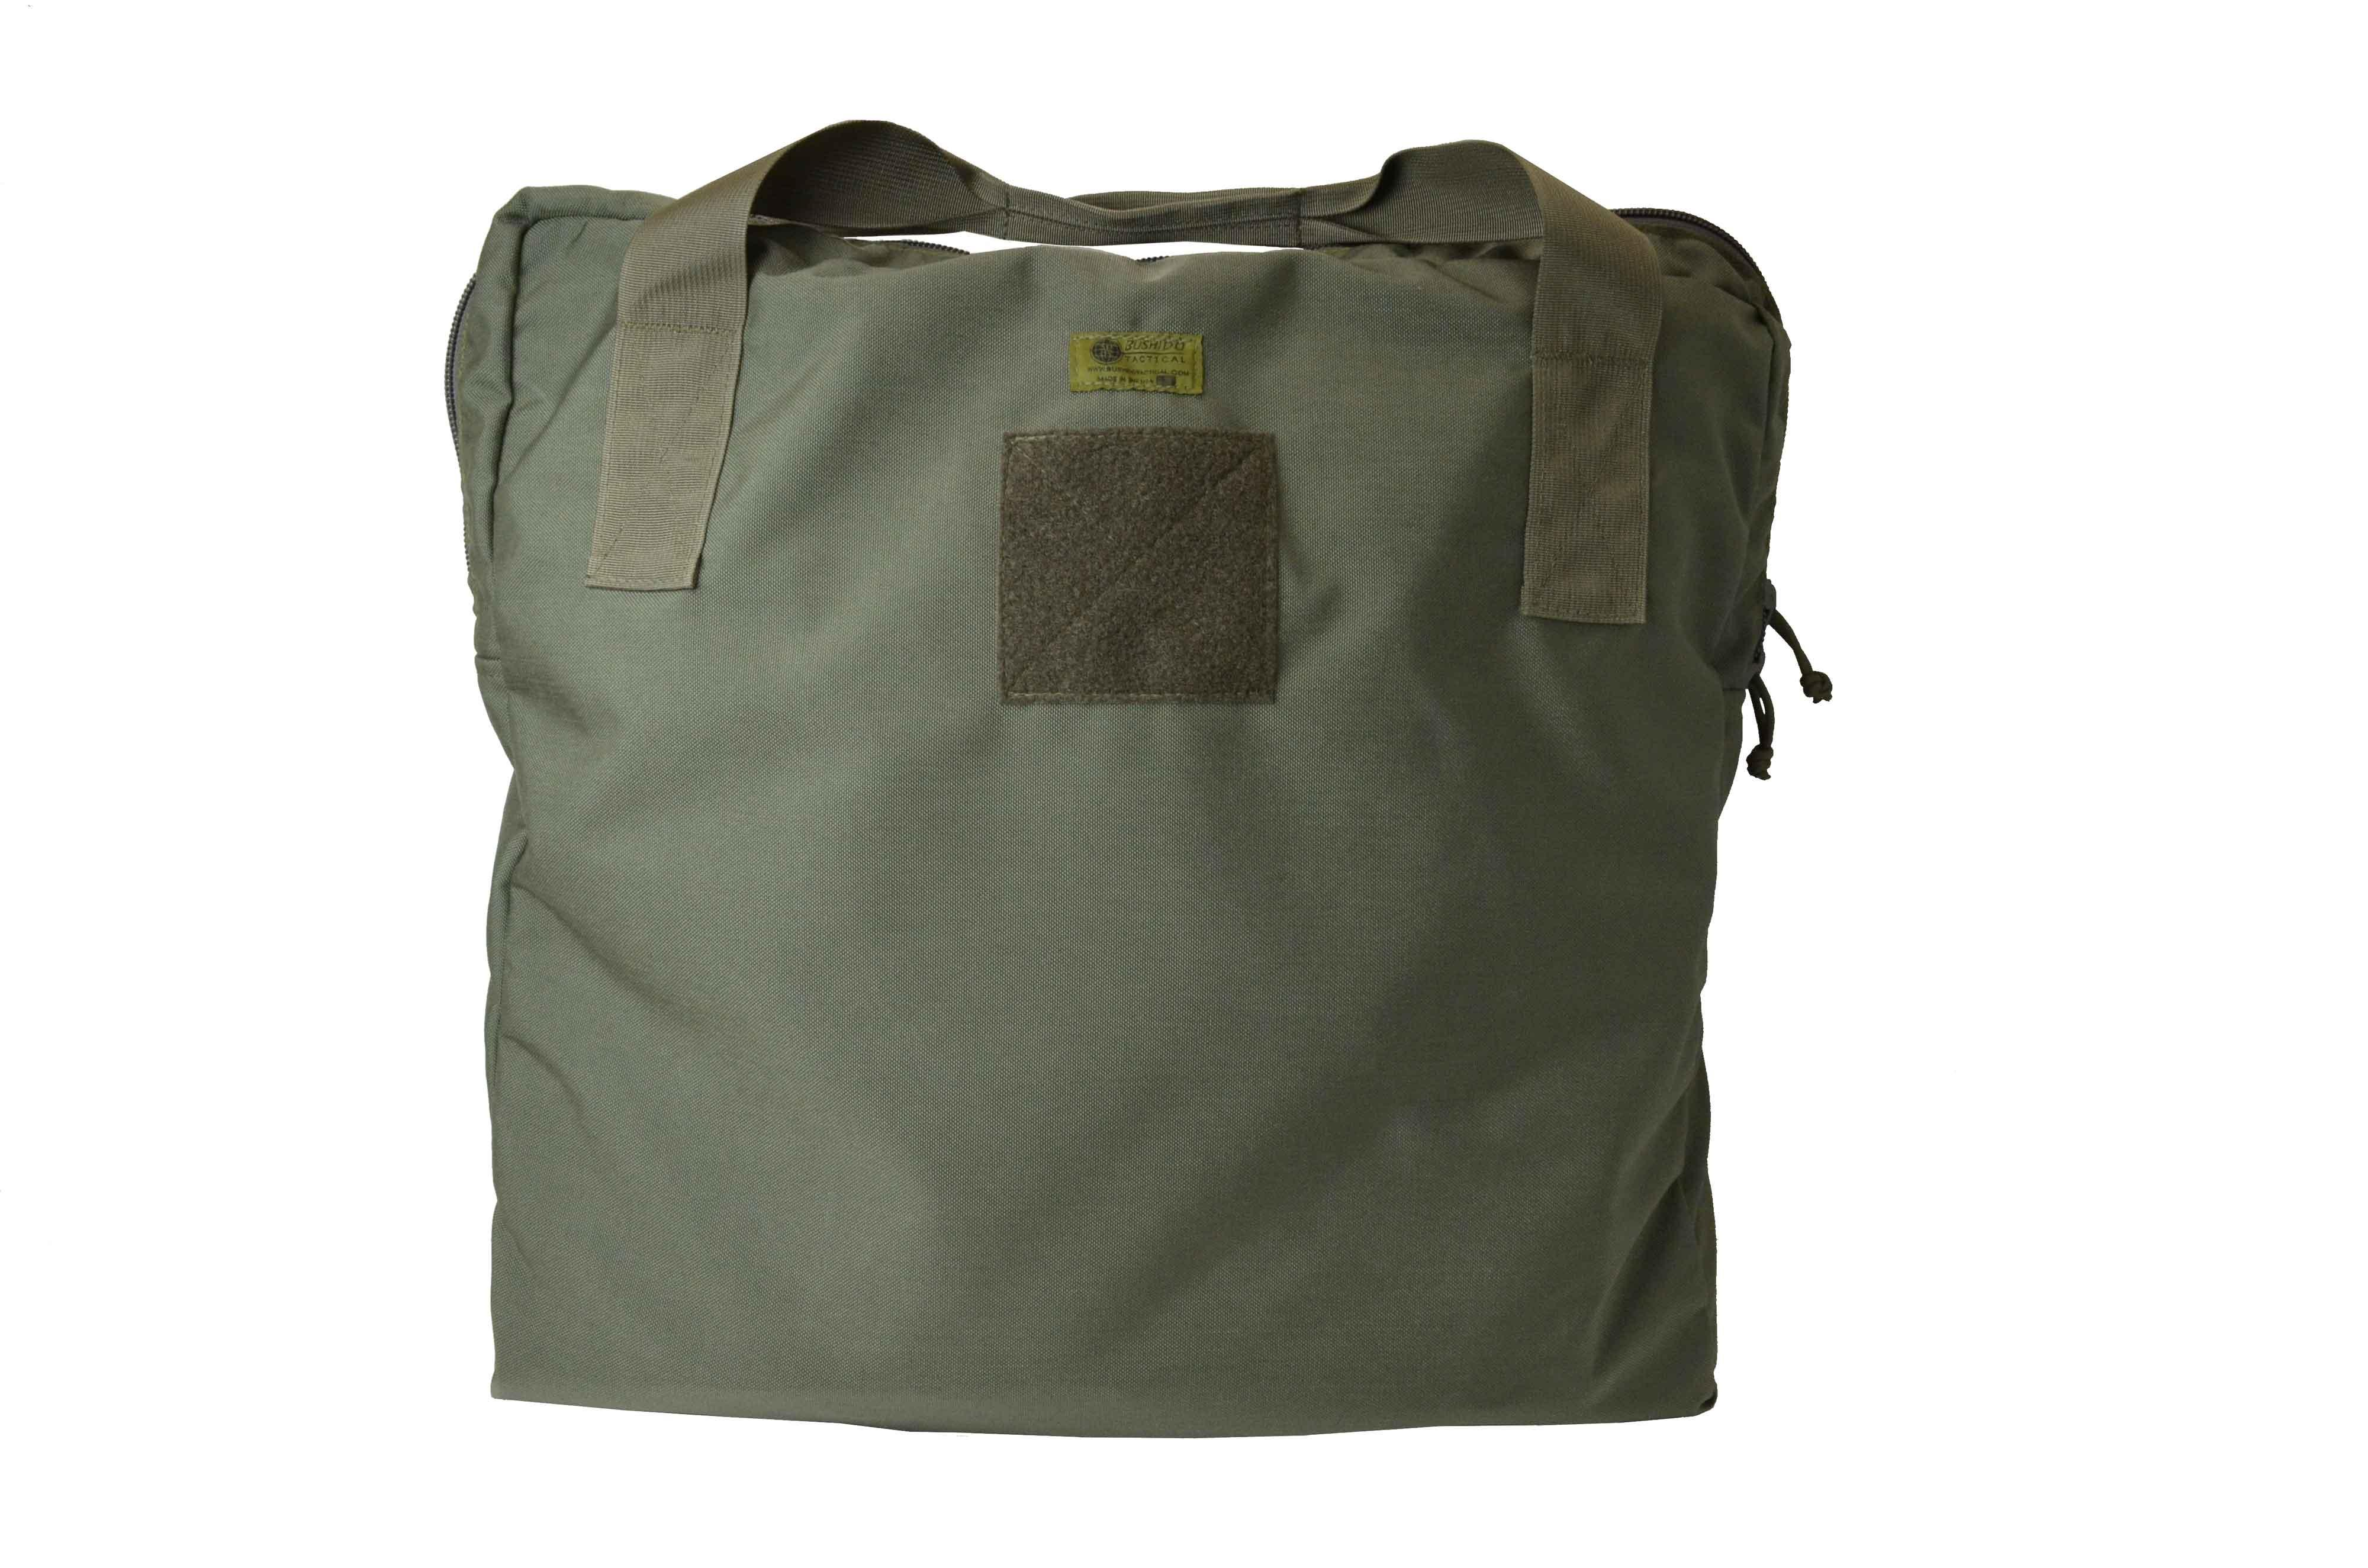 Large Utility/Tactical Vest/Body Armor Bag